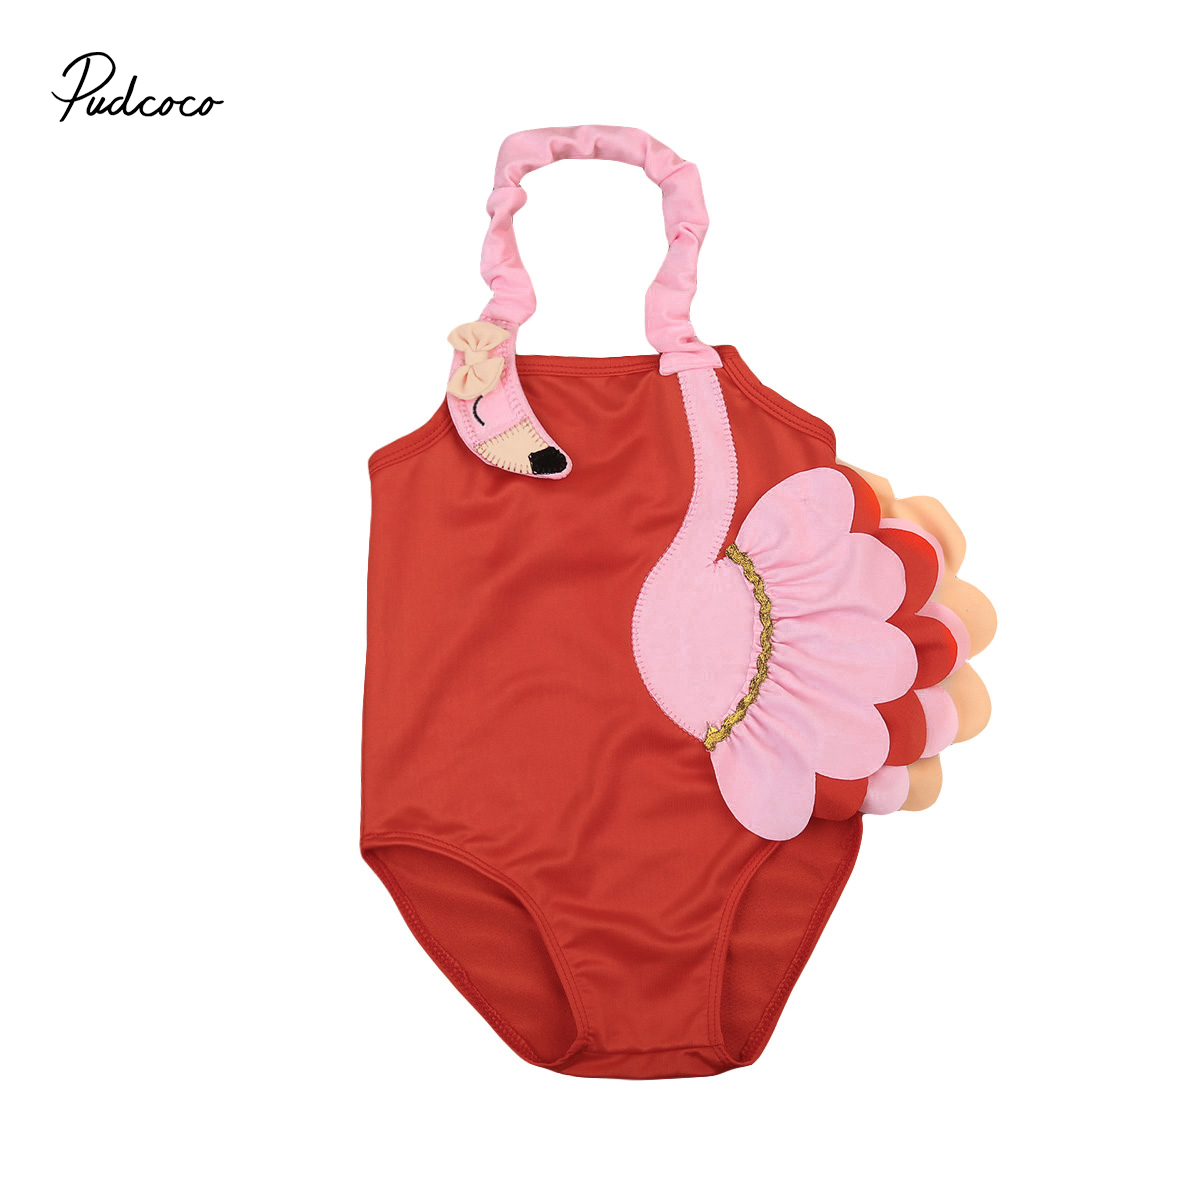 Toddler Kids Baby Girls Swimsuit 3D Flamingo Bikinis Swimwear Swimming Ruffle Halter Bathing Suit One-Piece Romper ...